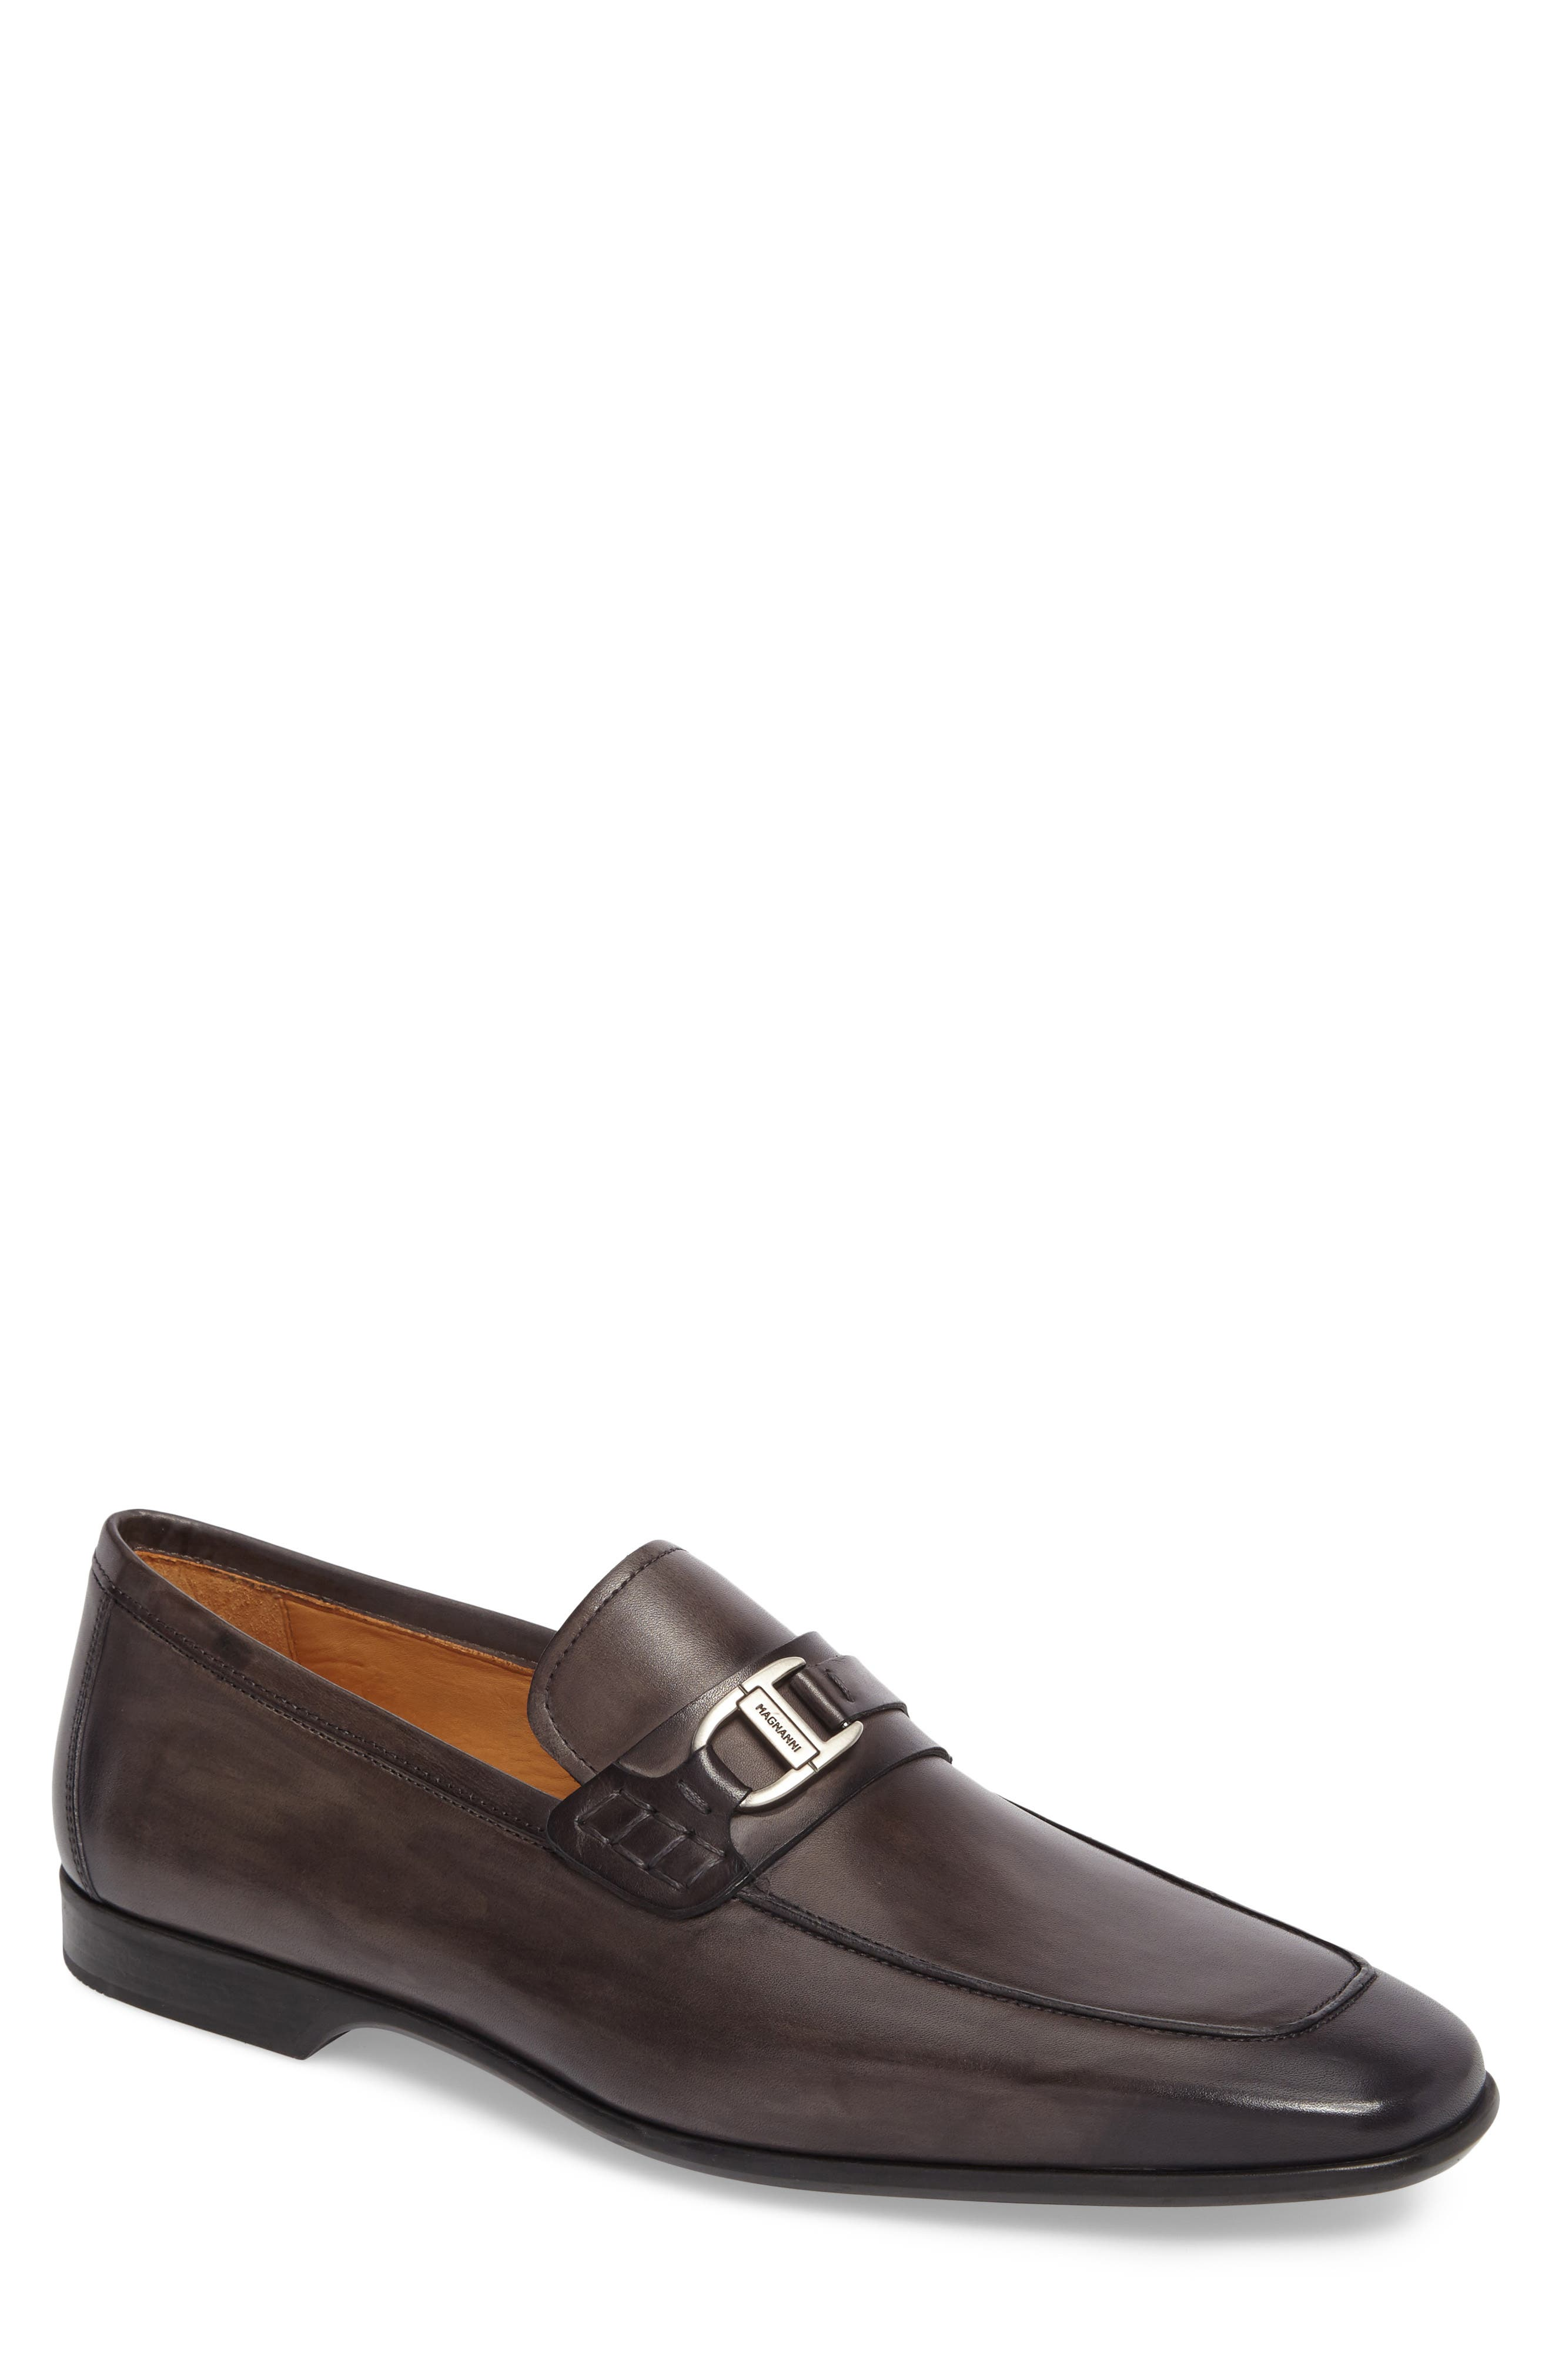 Rufino Bit Loafer,                         Main,                         color, GREY LEATHER